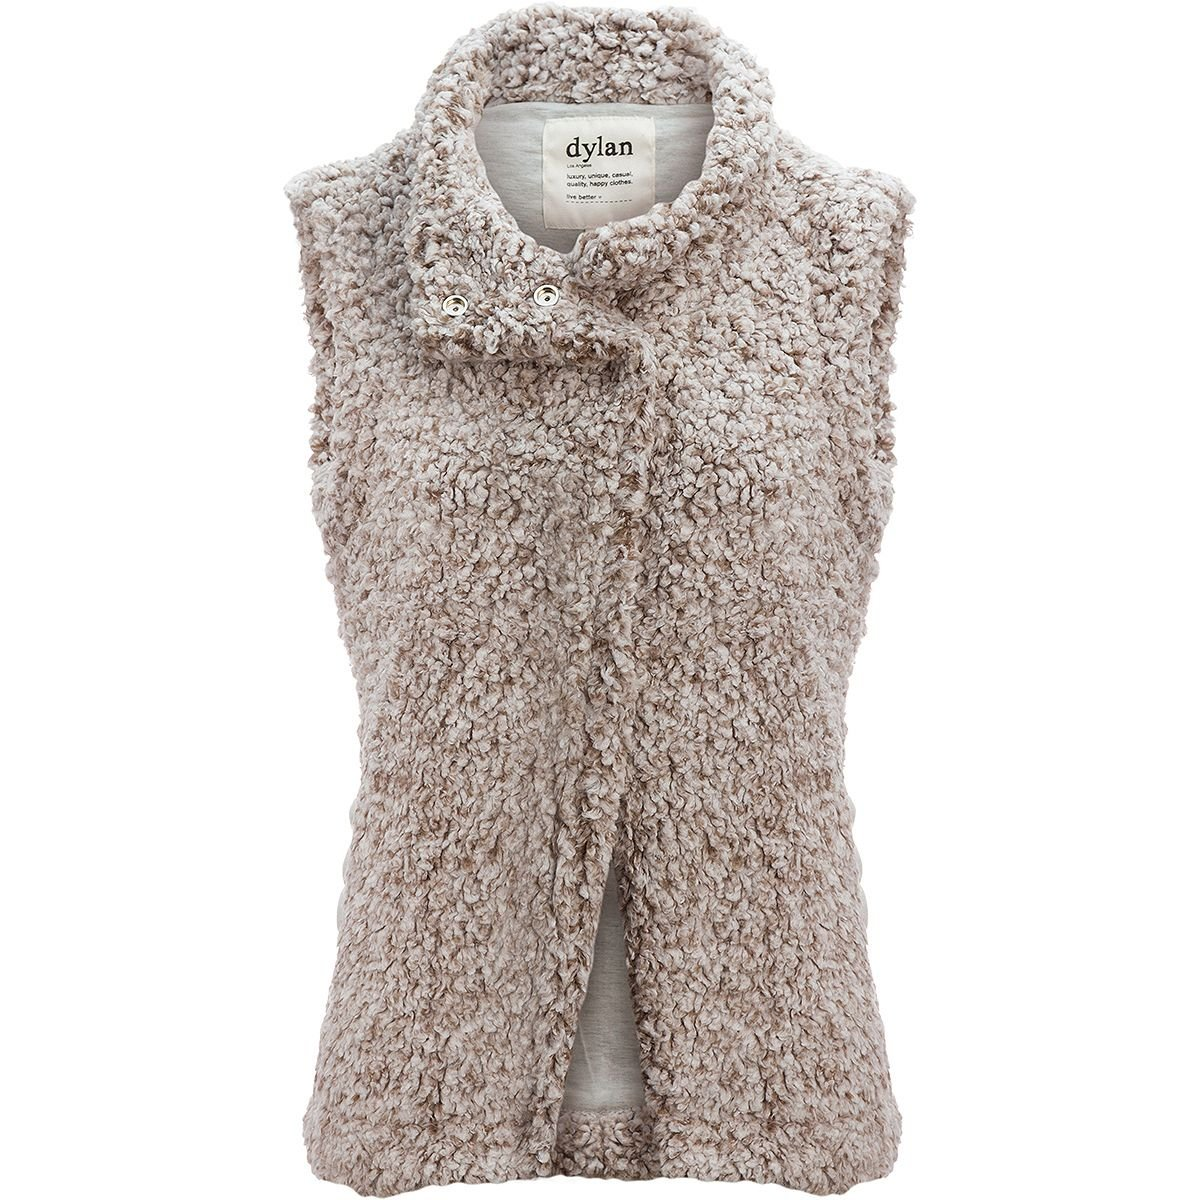 Dylan Solid Frosty Tipped Cozy Vest, Brown, X-Small